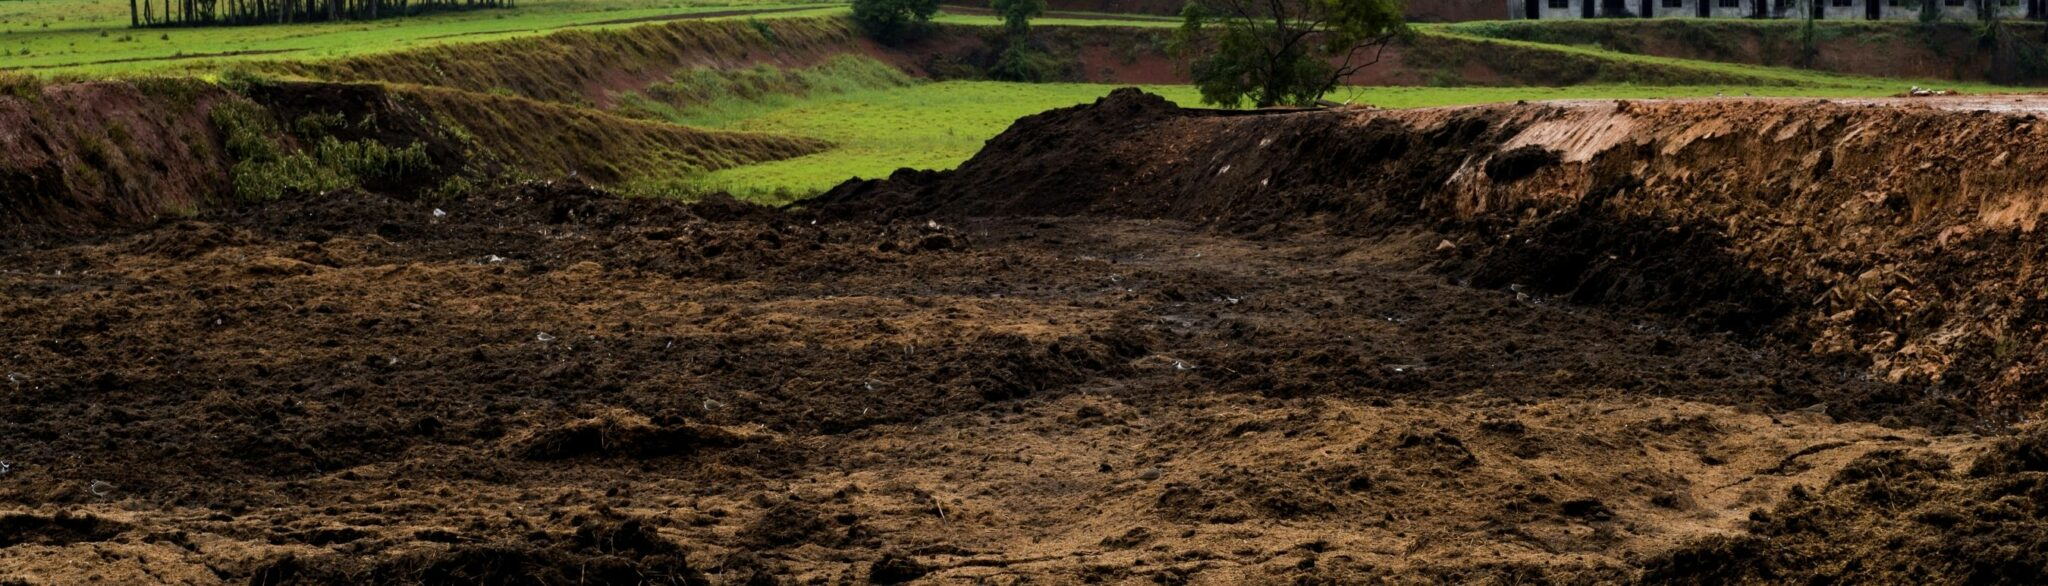 large field with piles of rich loamy soil ready to be added for lawns